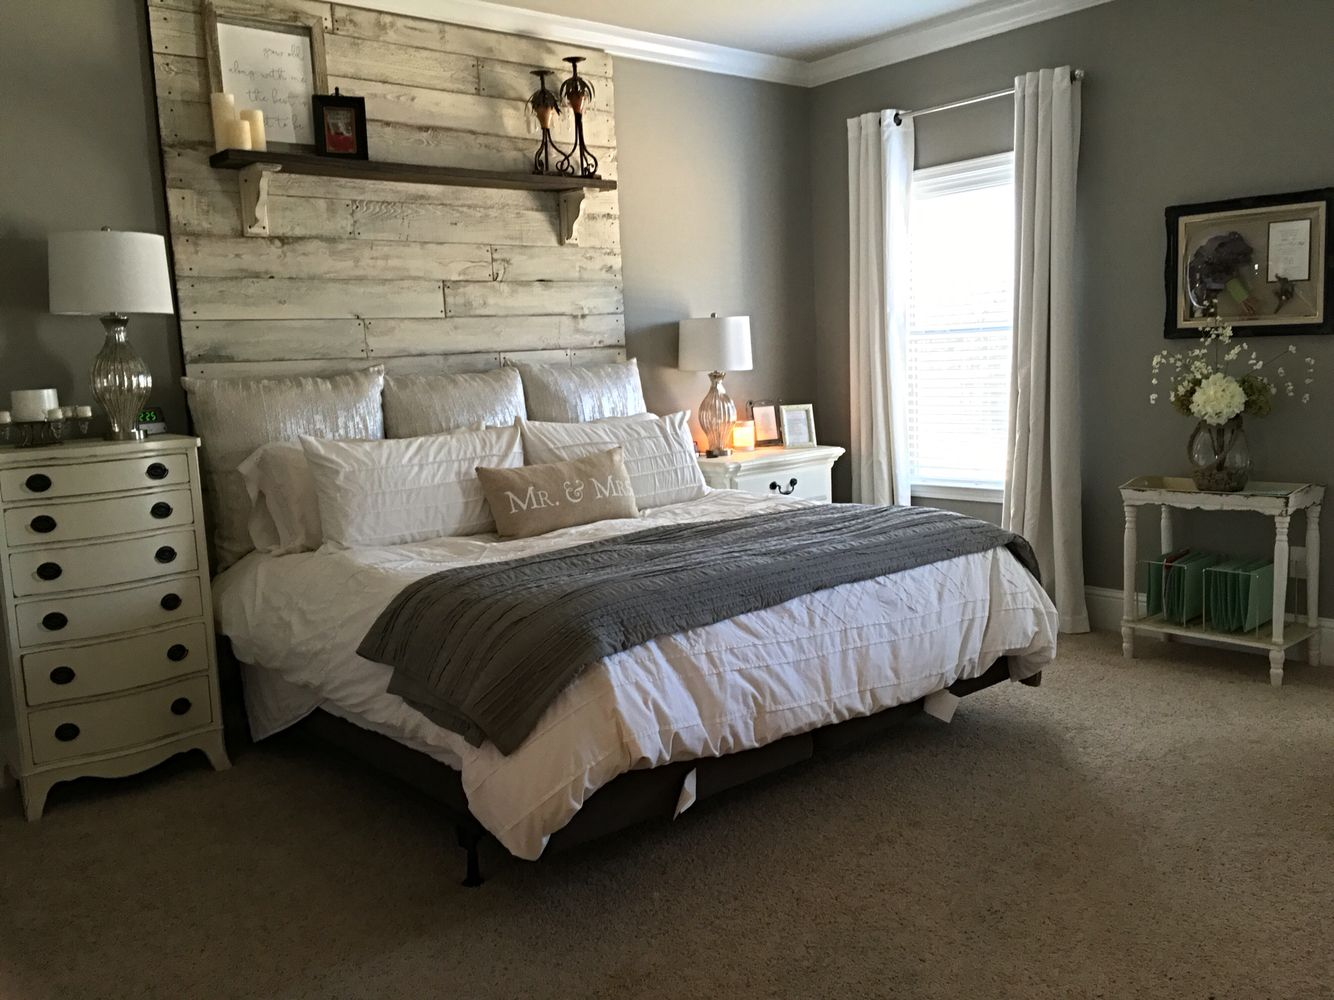 79 Superb Diy Headboard Ideas For Your Chic Bedroom